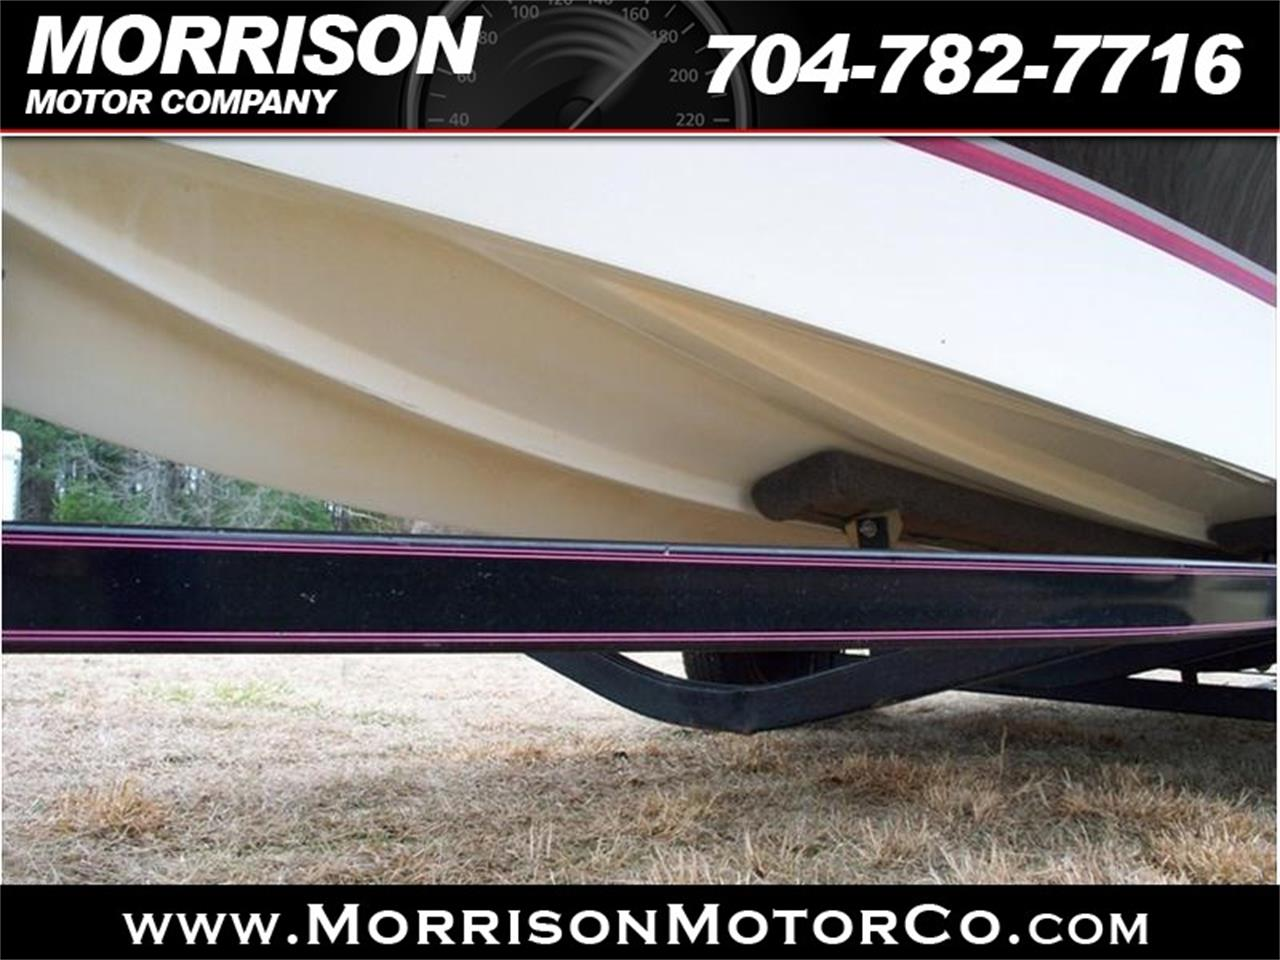 1991 Miscellaneous Boat for sale in Concord, NC – photo 6